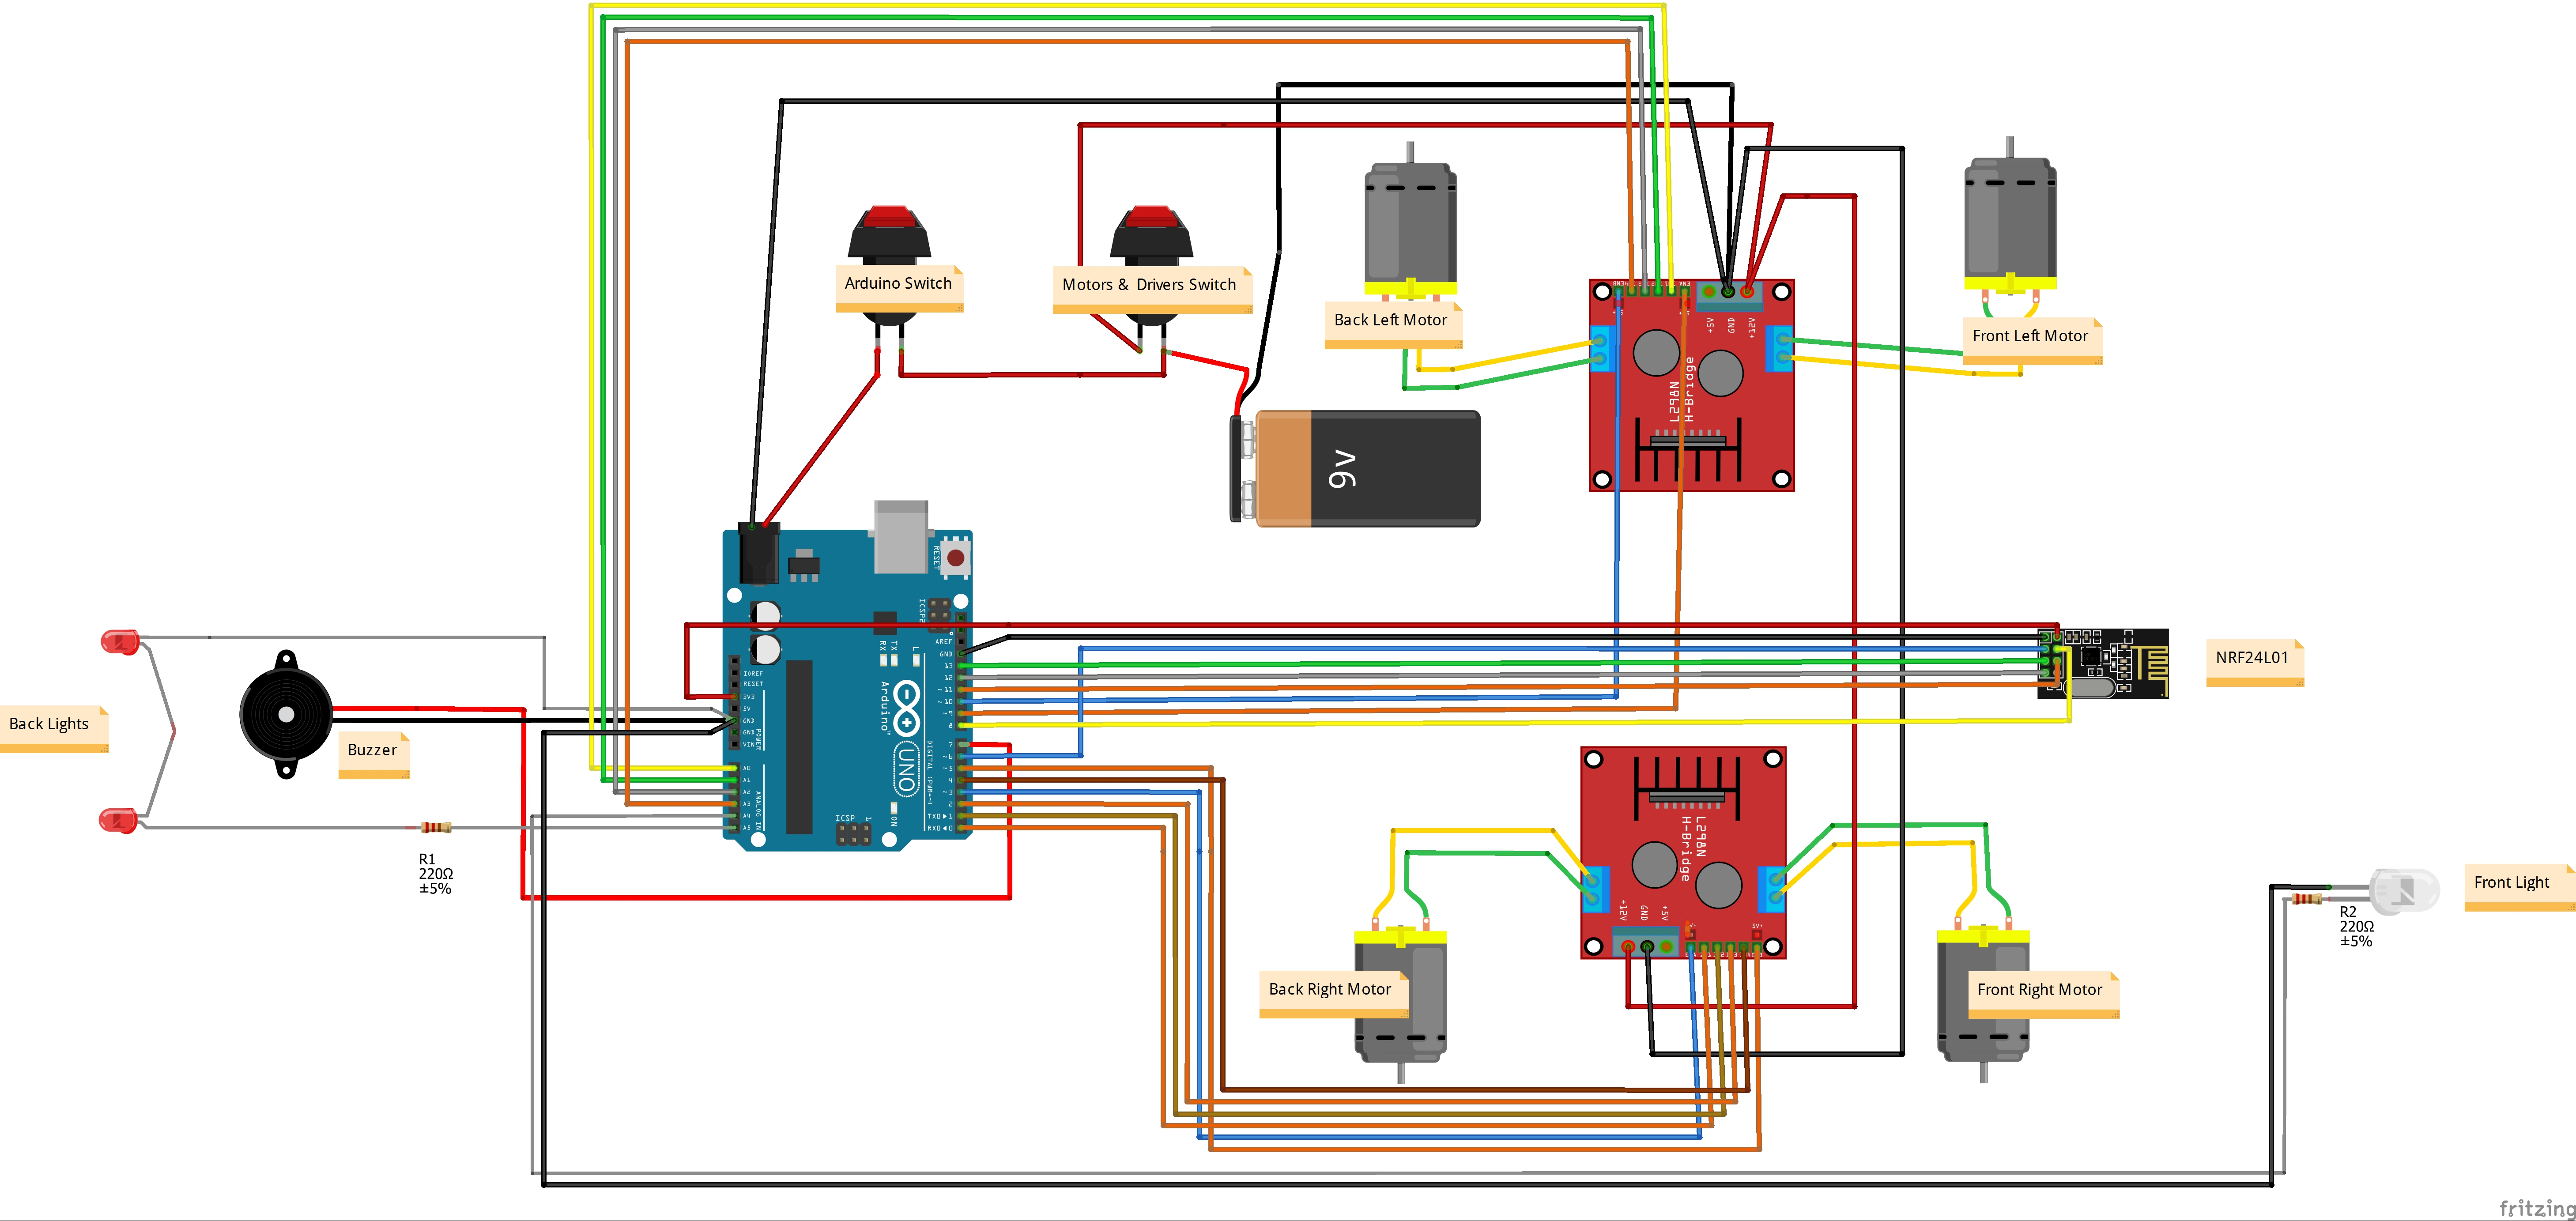 hight resolution of electric rc car wiring diagram wiring diagram for you electric vehicle charger wiring diagram electric rc car wiring diagram